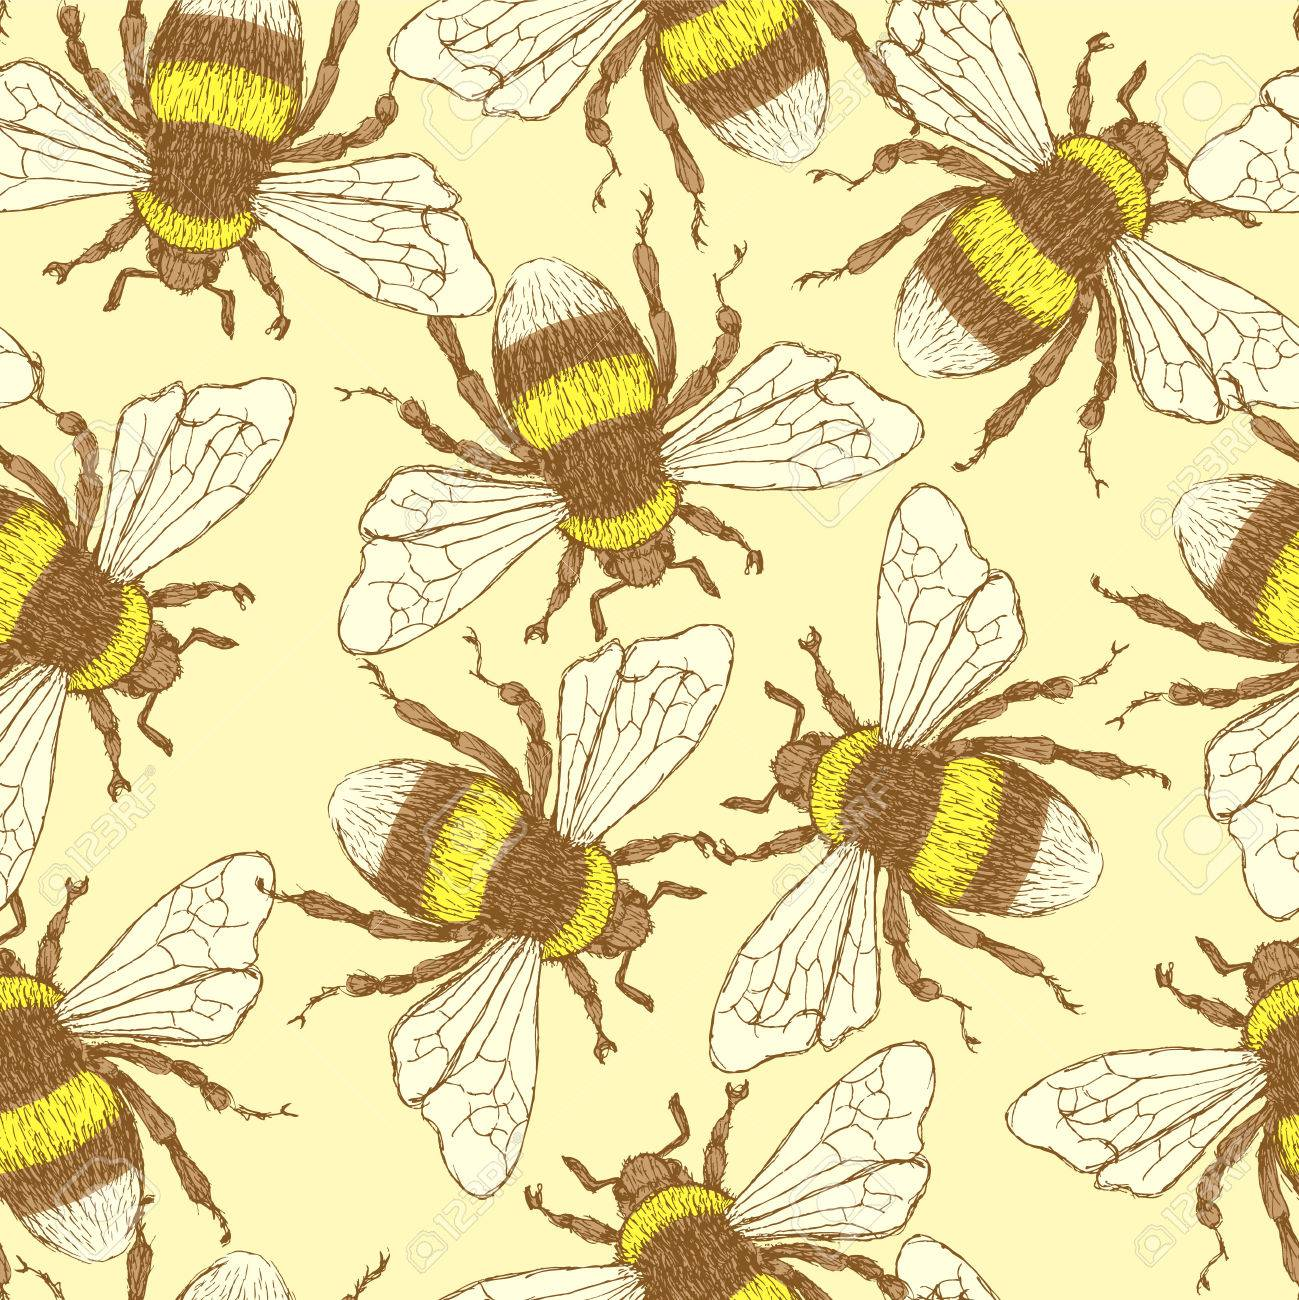 Sketch Bumble Bee In Vintage Style Vector Seamless Pattern Stock